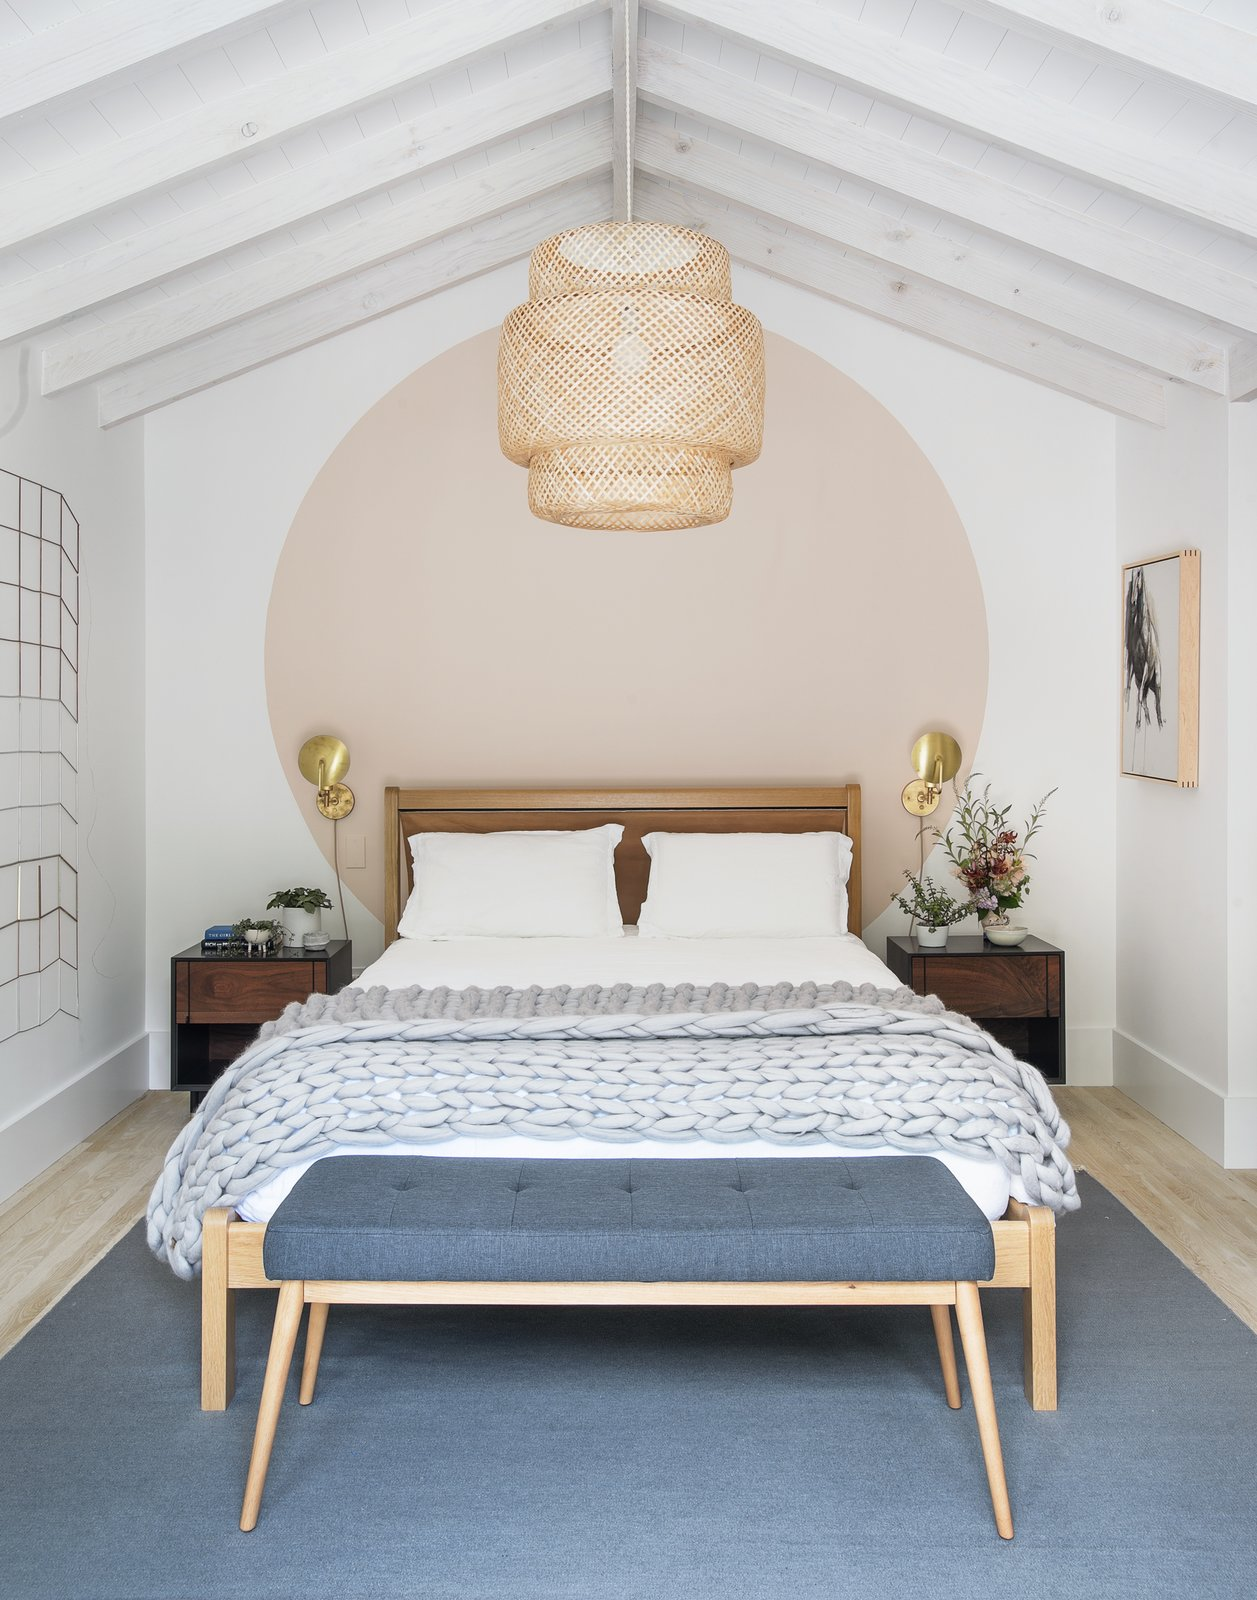 Bedroom, Lamps, Light Hardwood, Bed, Pendant, Wall, Bench, Night Stands, and Rug  Best Bedroom Bed Rug Lamps Bench Photos from A Hamptons Beach Retreat Gets a Scandinavian-Style Makeover